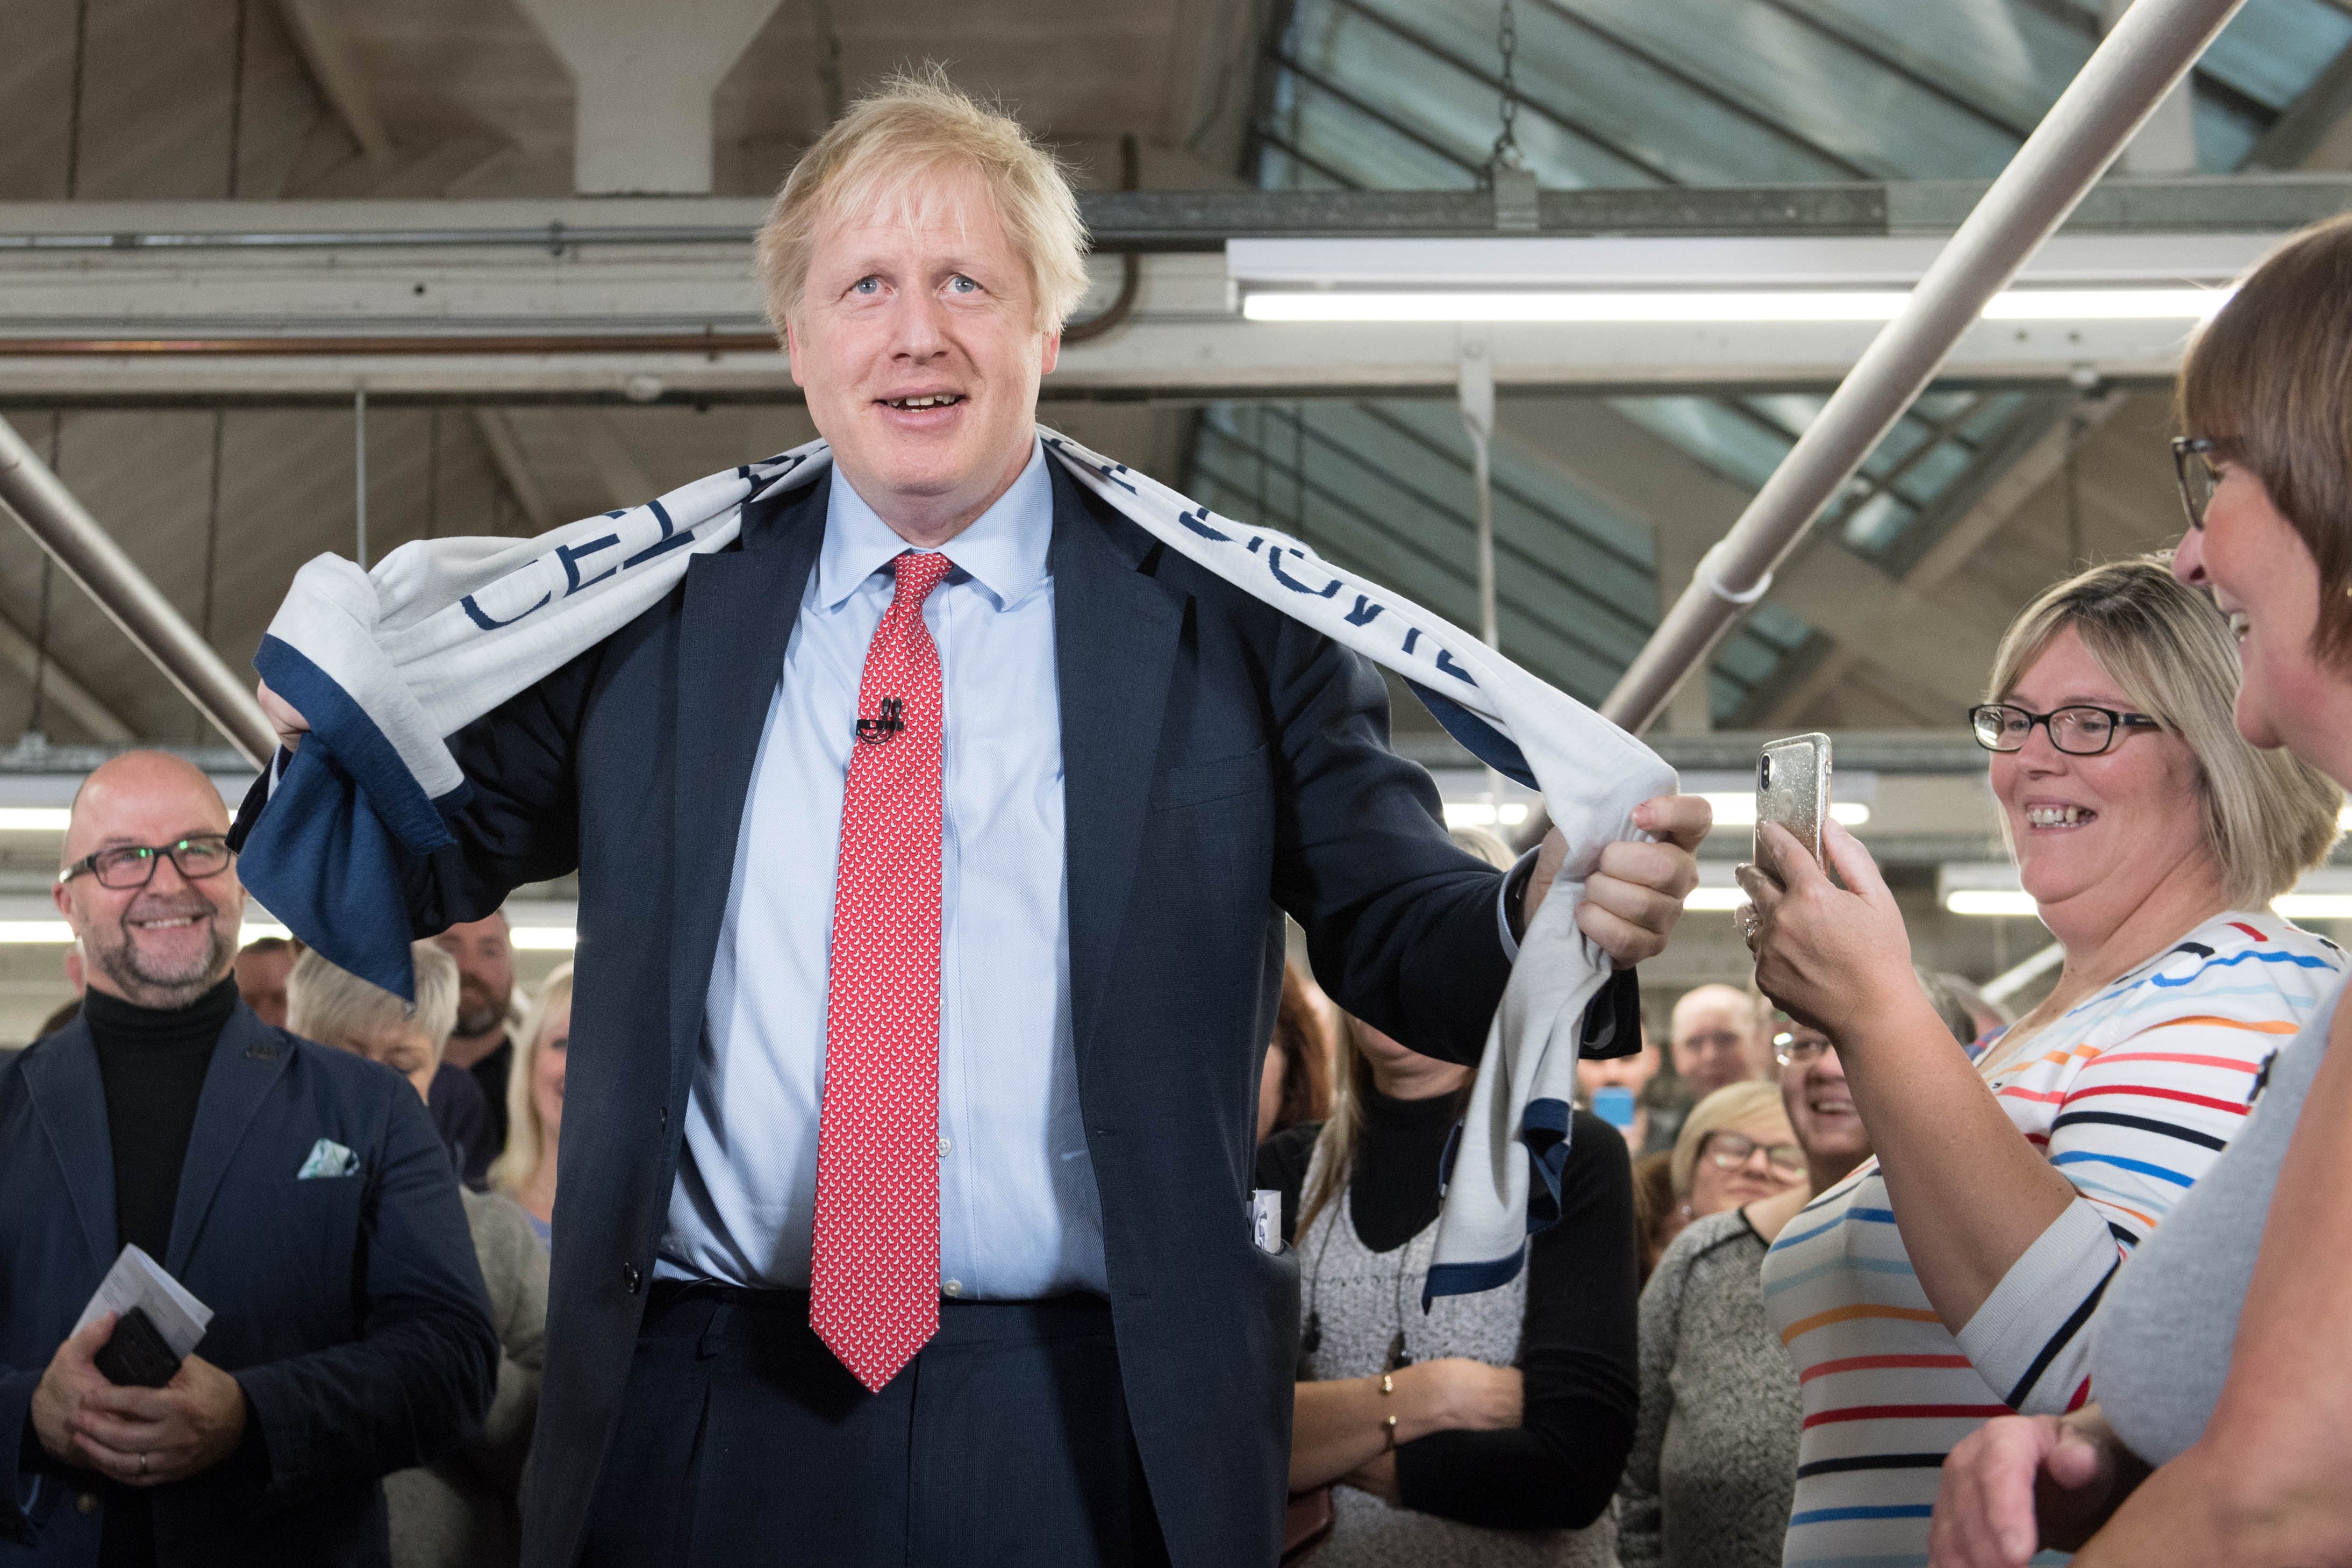 Prime Minister Boris Johnson speaking during a visit to the John Smedley Mill, while election campaigning in Matlock, Derbyshire.